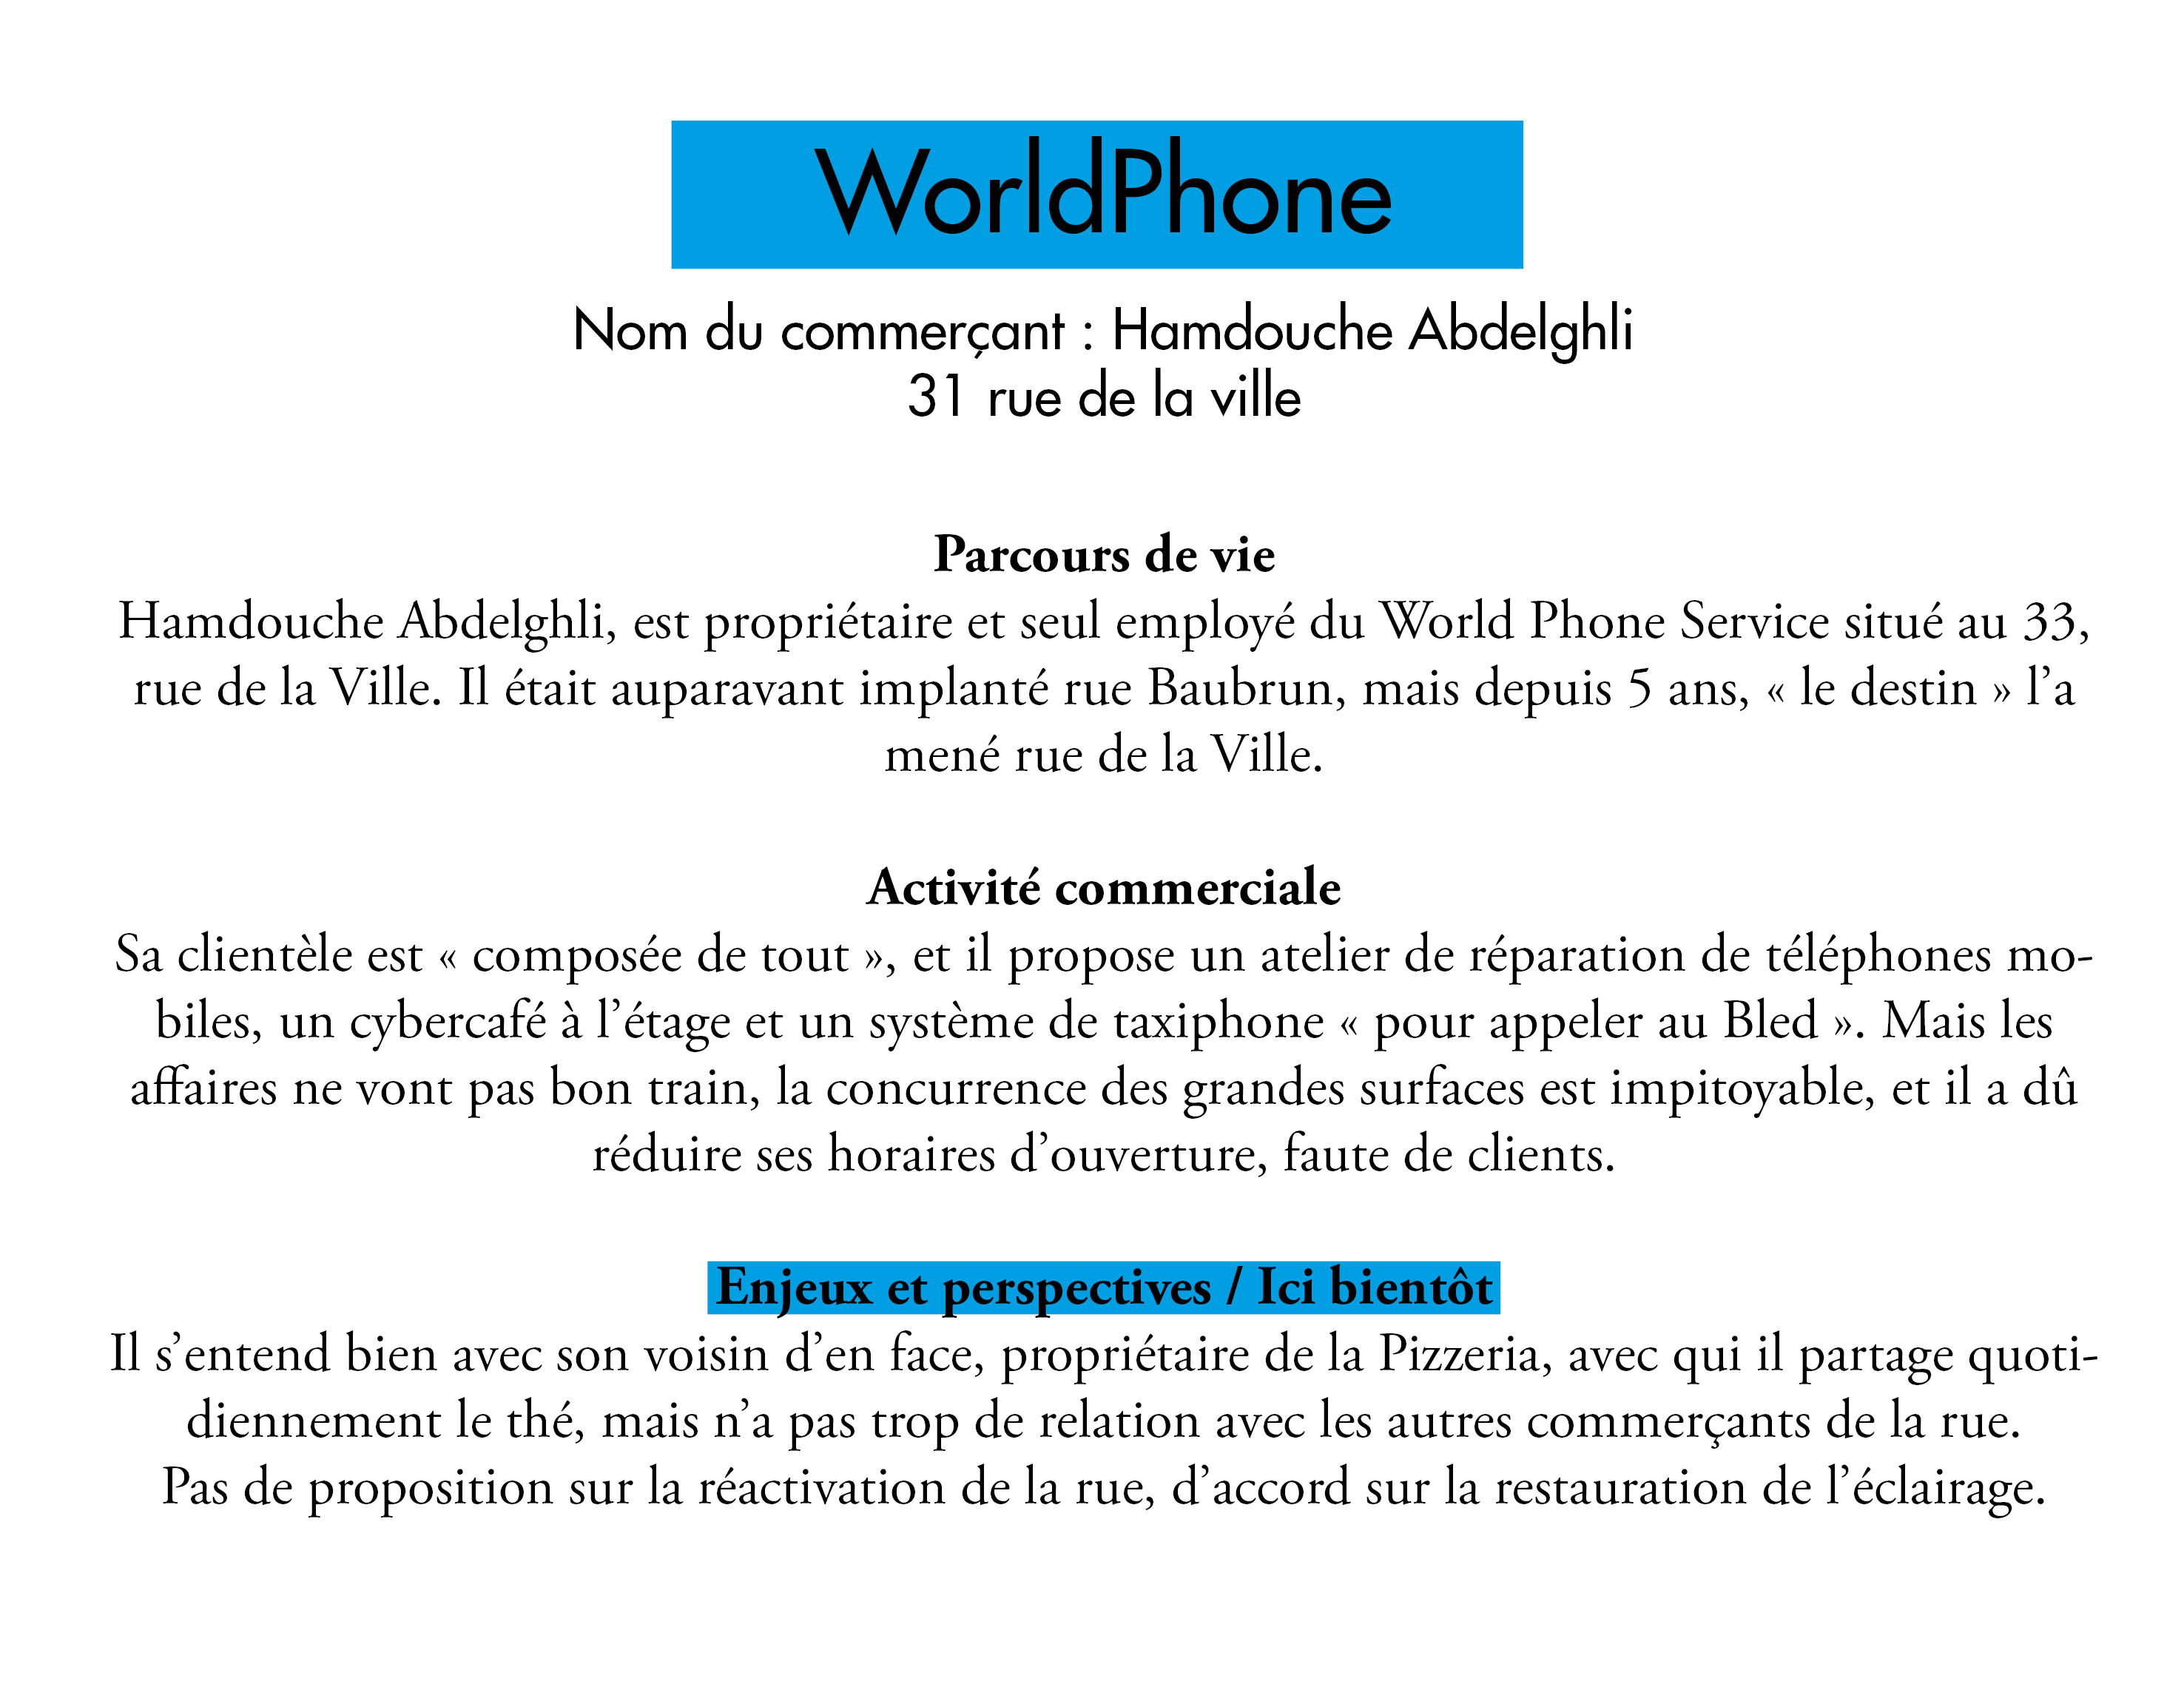 worldphone